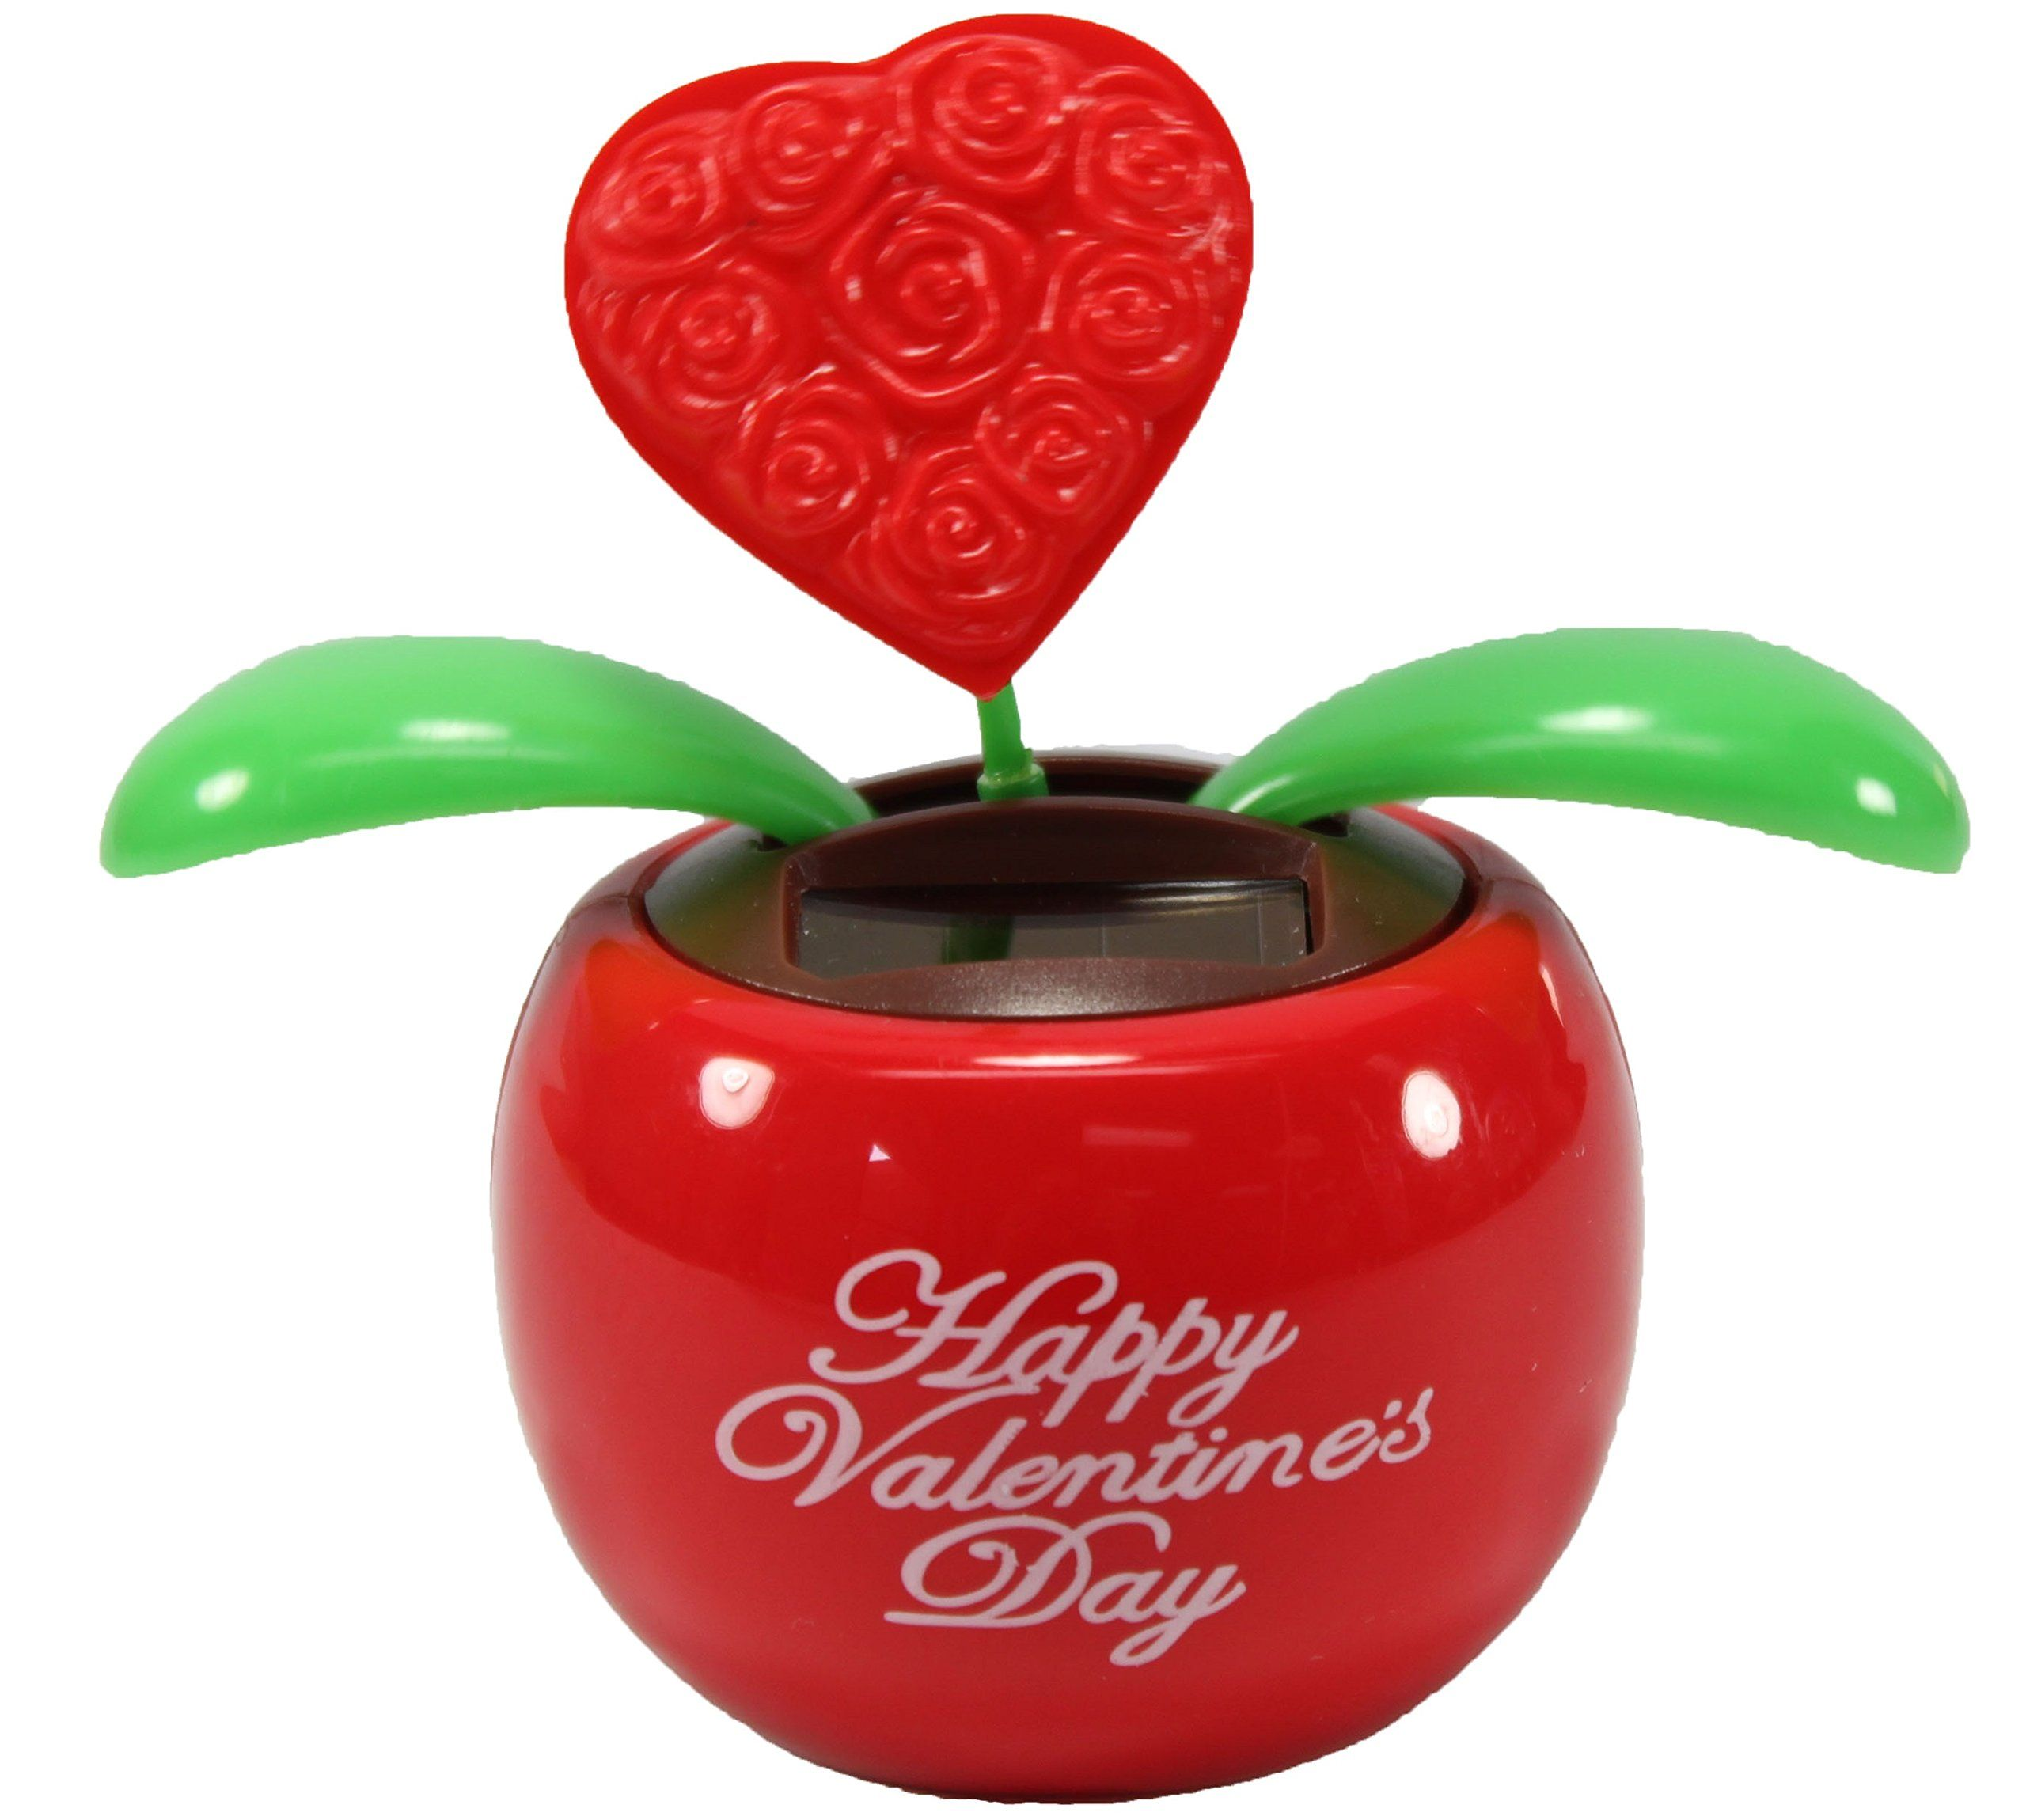 Lovers gift 1 red heart in red pot solar toy valentines